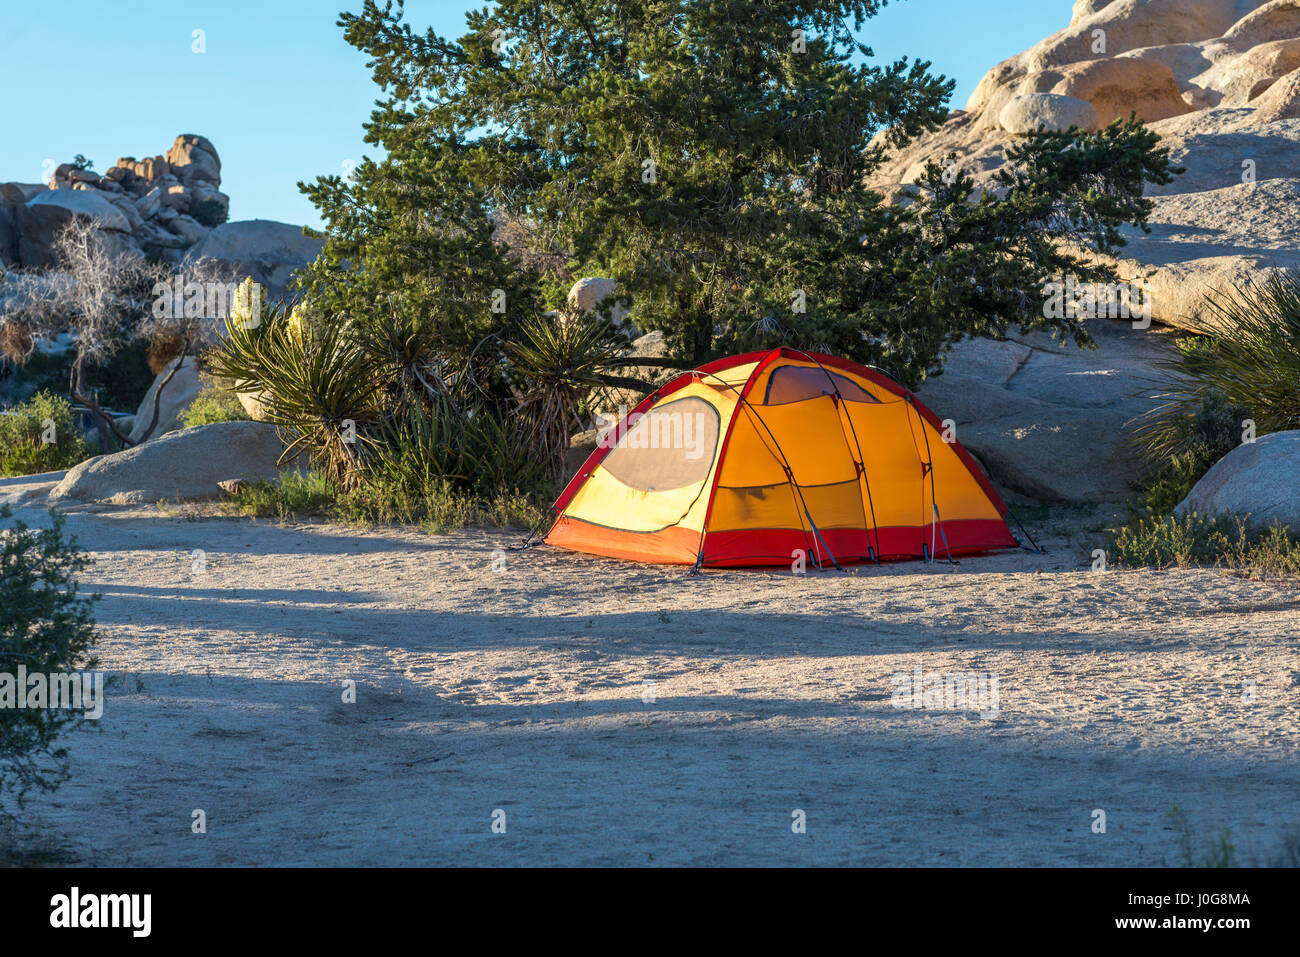 Camping Zelt im Joshua Tree Nationalpark, Kalifornien, USA. Stockbild